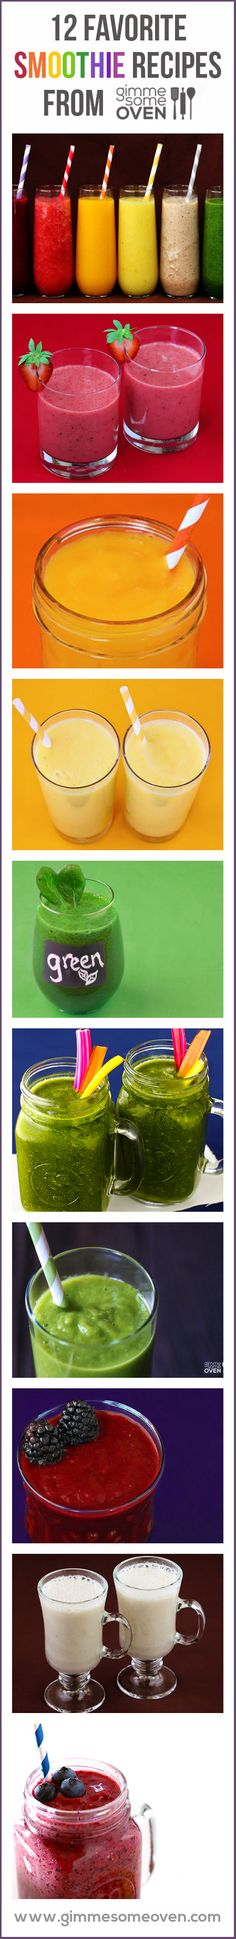 A great list of delicious (and healthy!) smoothie recipes to try this year!